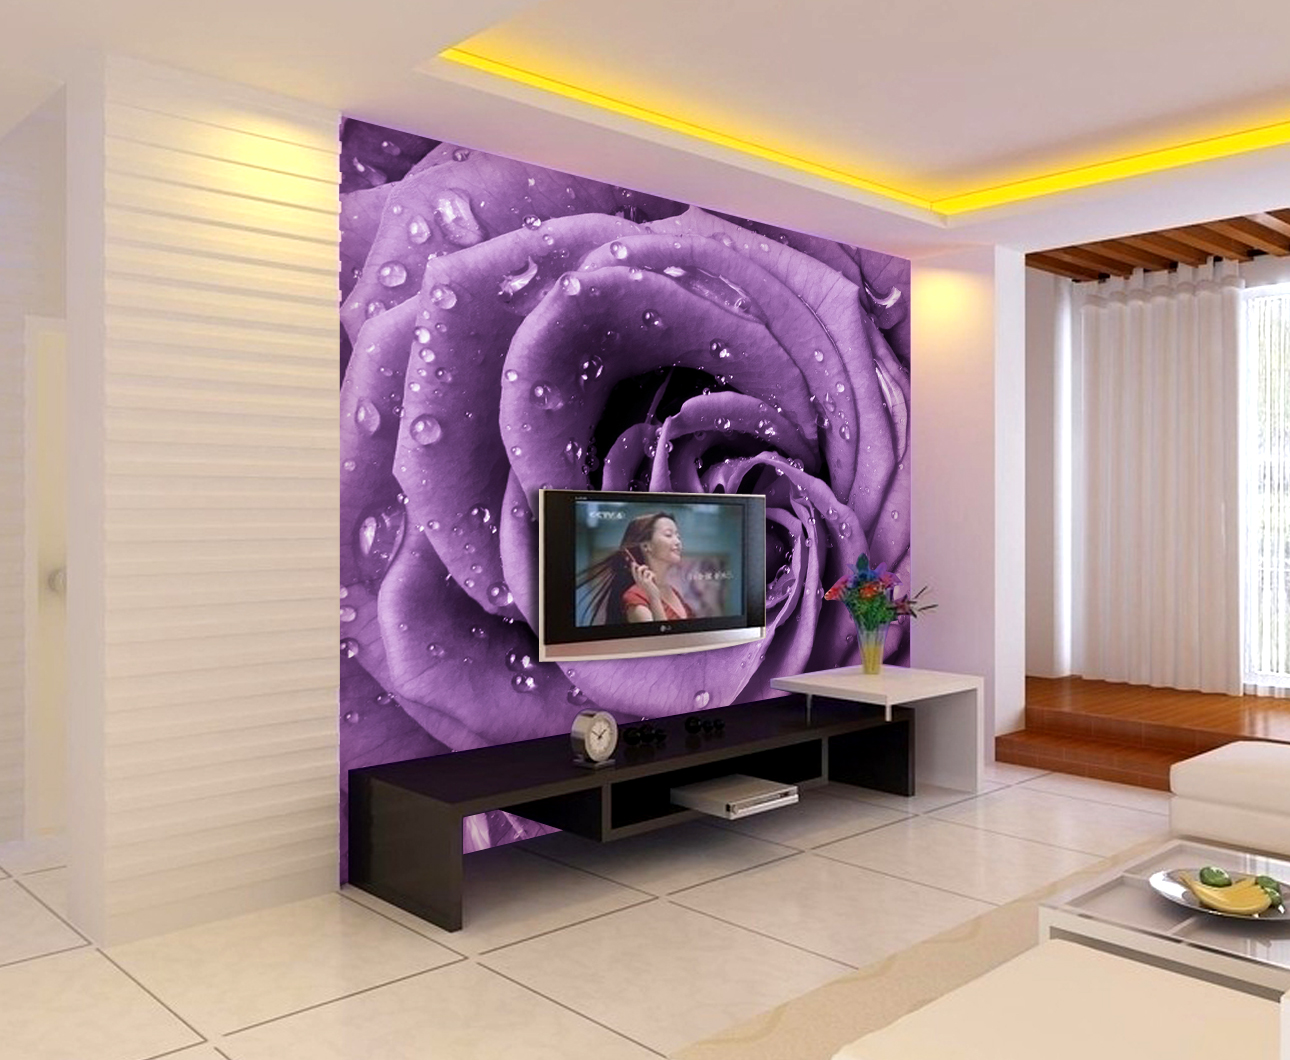 цена Hot custom stickers art modern large mural 3d wallpaper stereo purple rose tv sofa background wall paper eco-friendly home decor онлайн в 2017 году